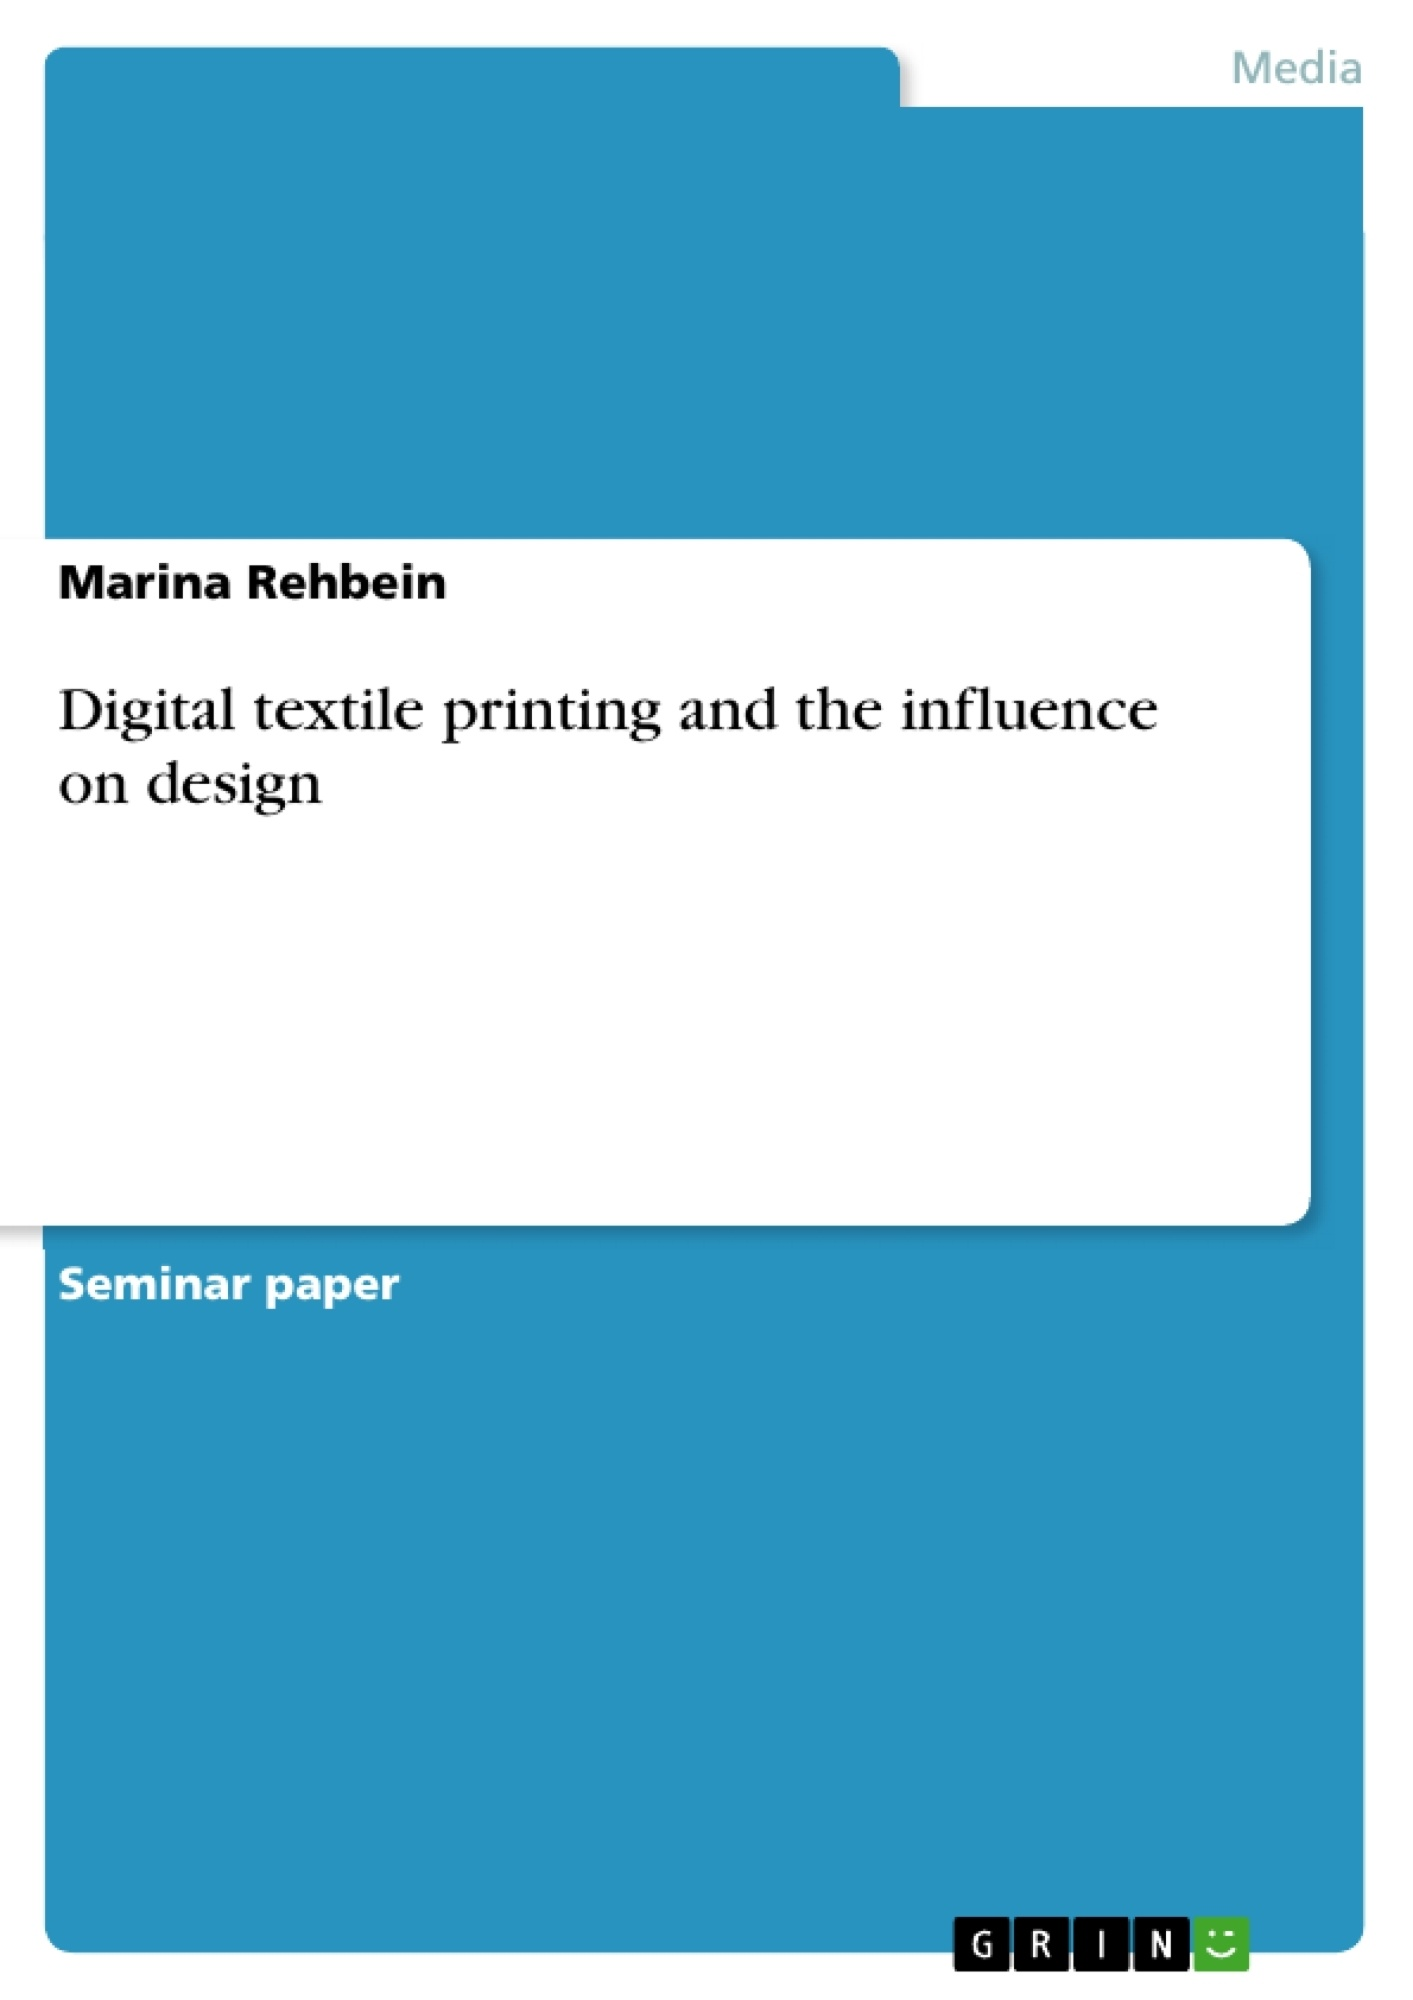 Title: Digital textile printing and the influence on design